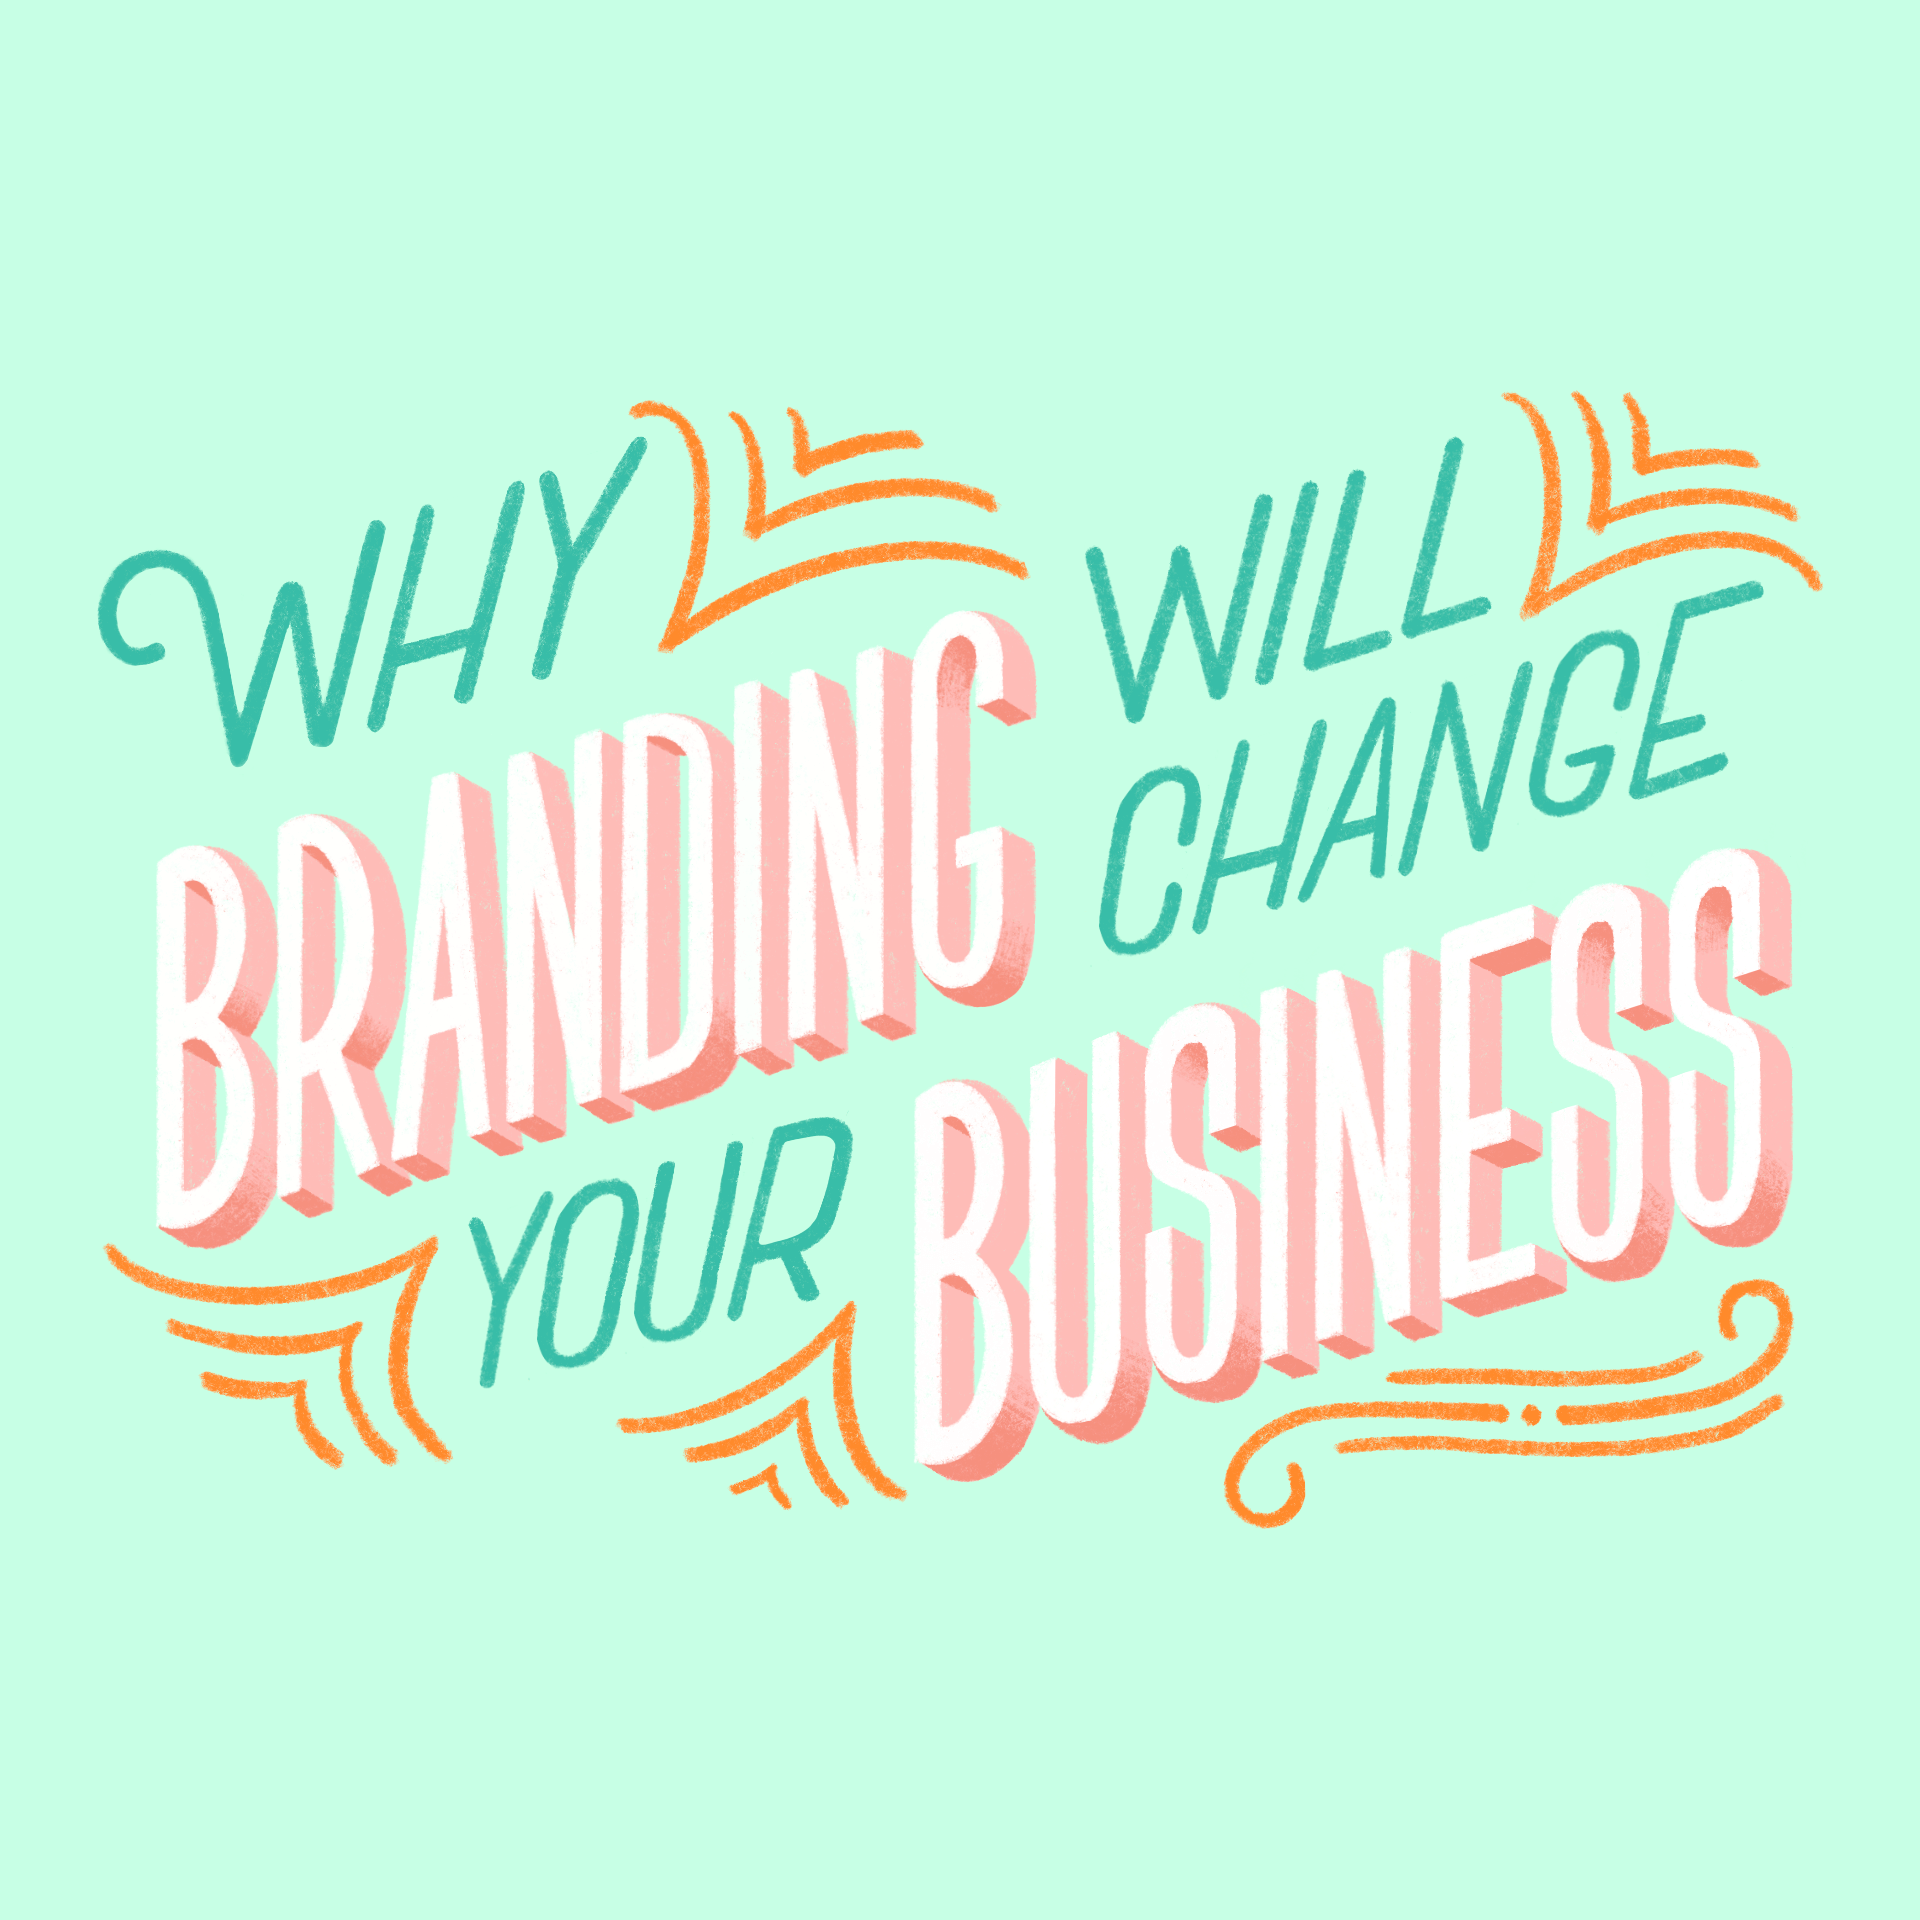 Why Branding Will Change Your Business